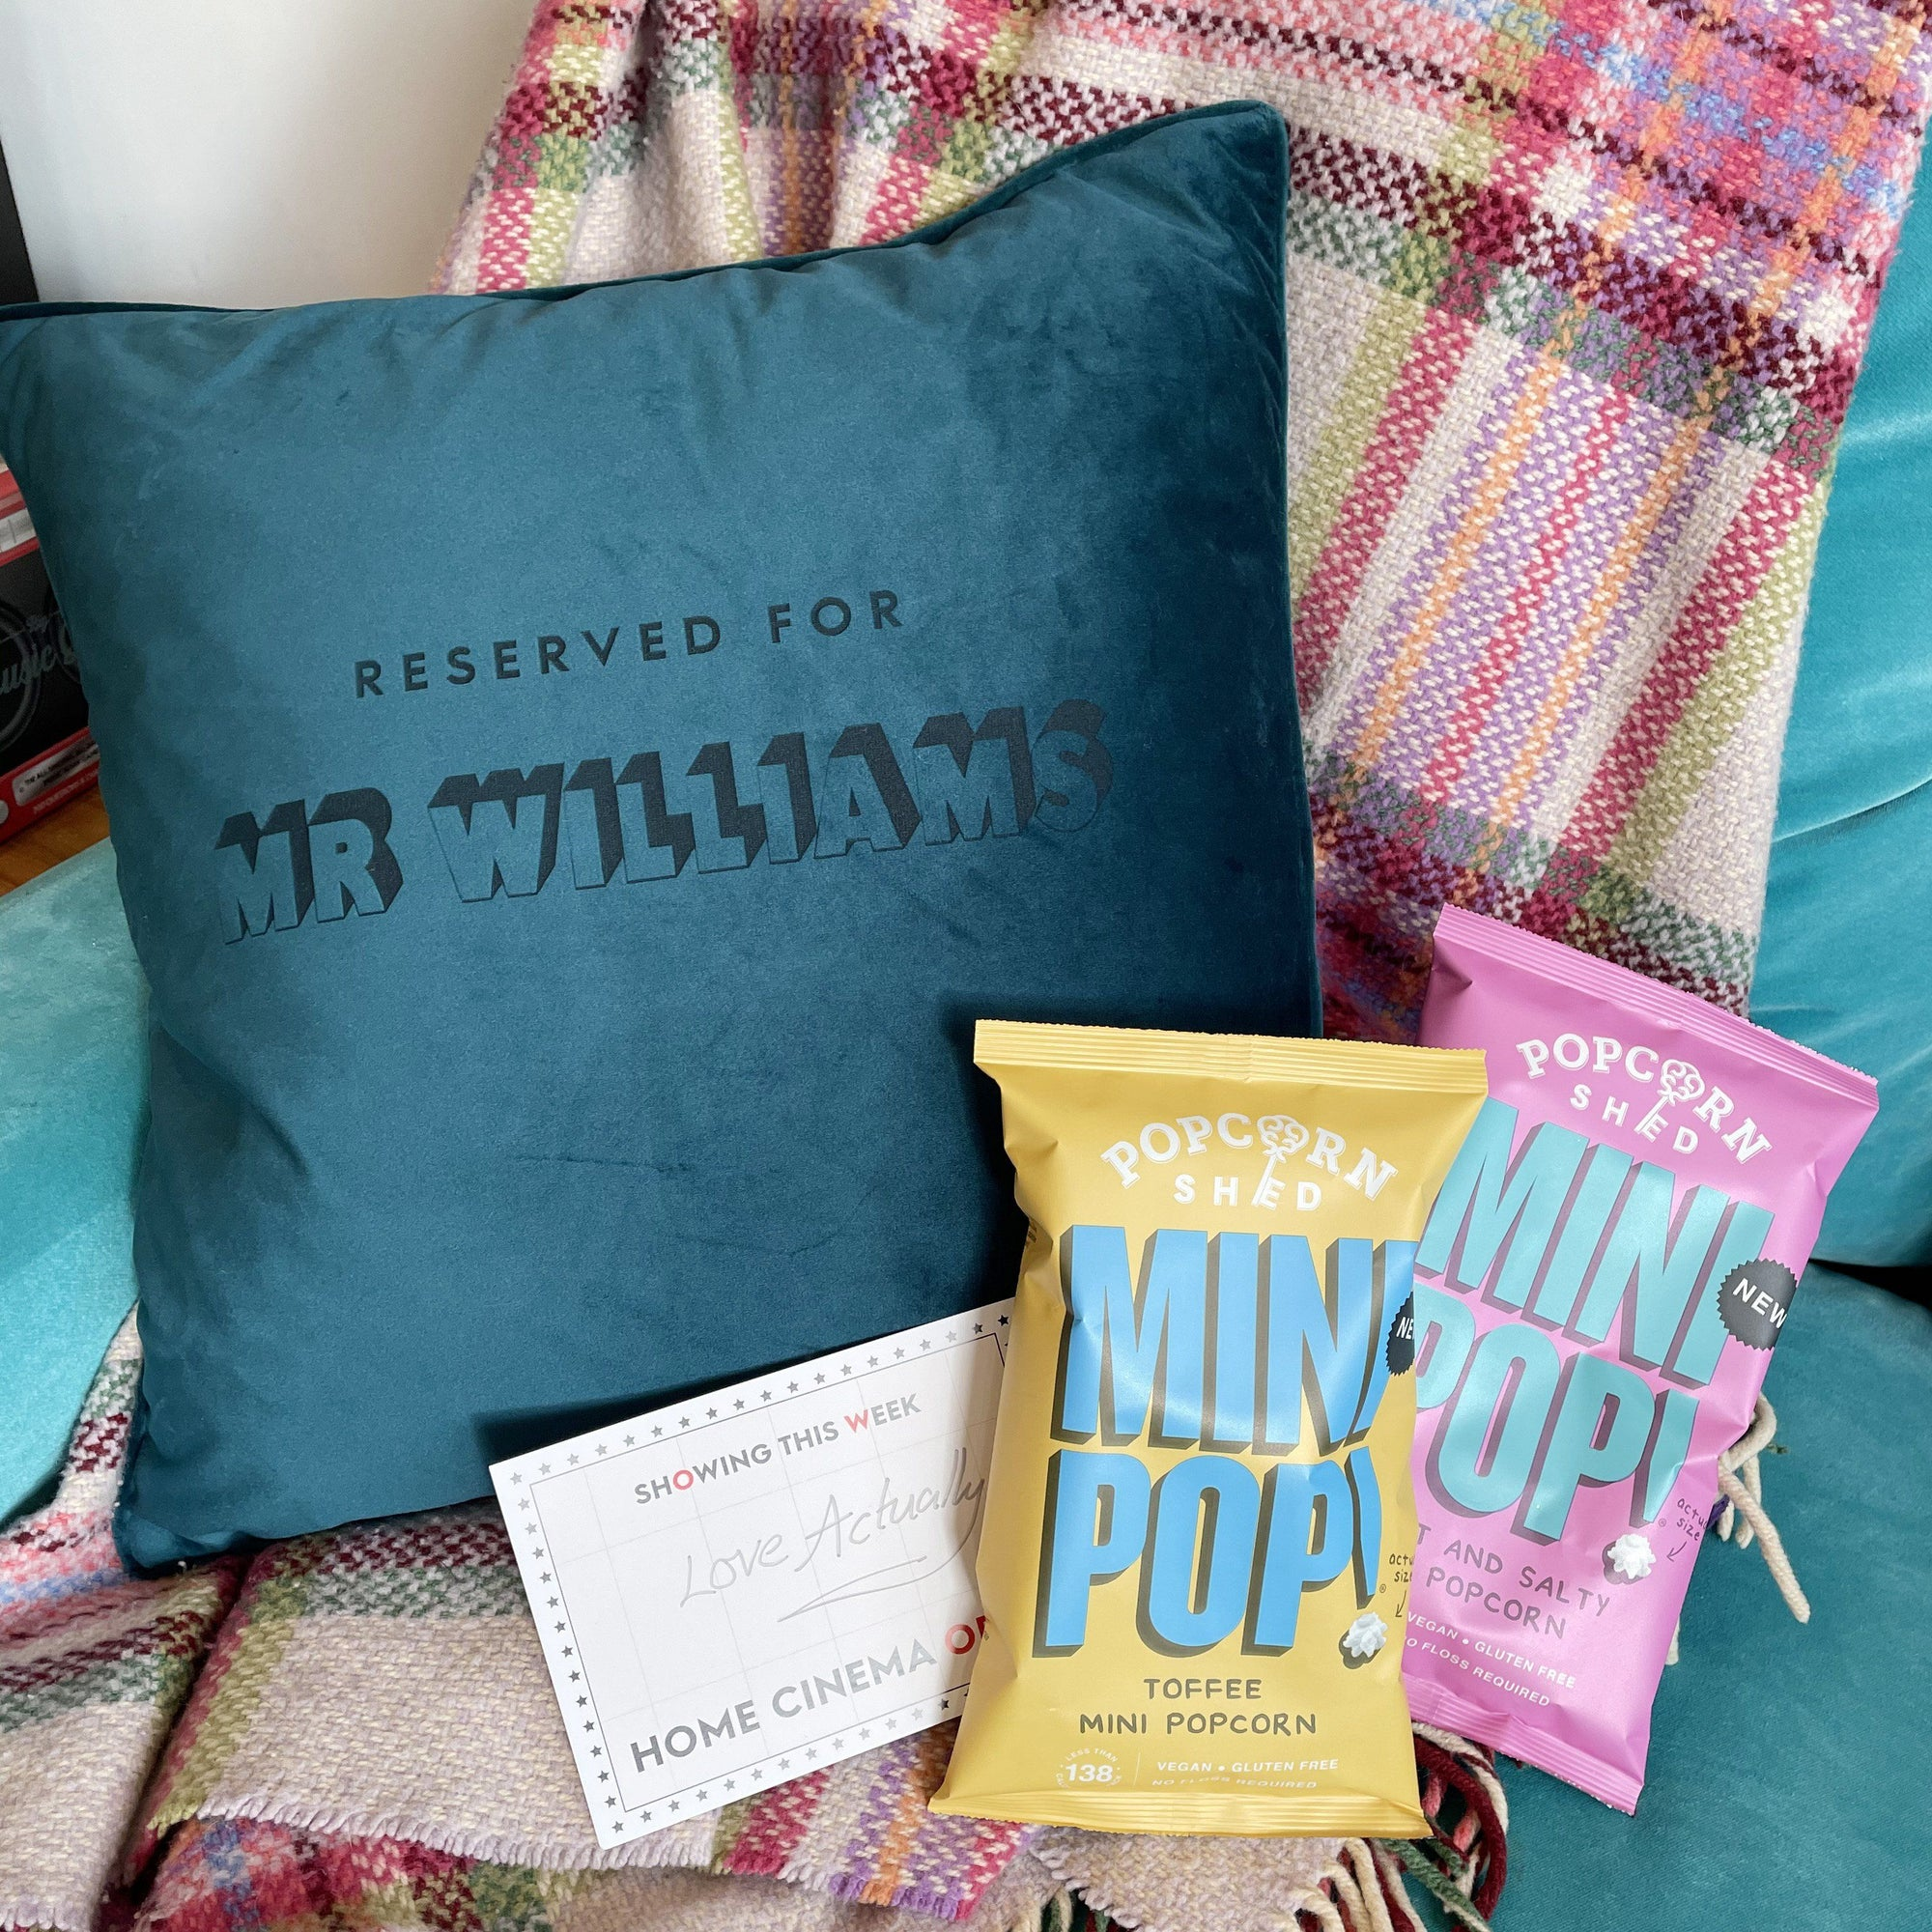 Home Cinema Cushion and Popcorn Gift set-Betsy Benn